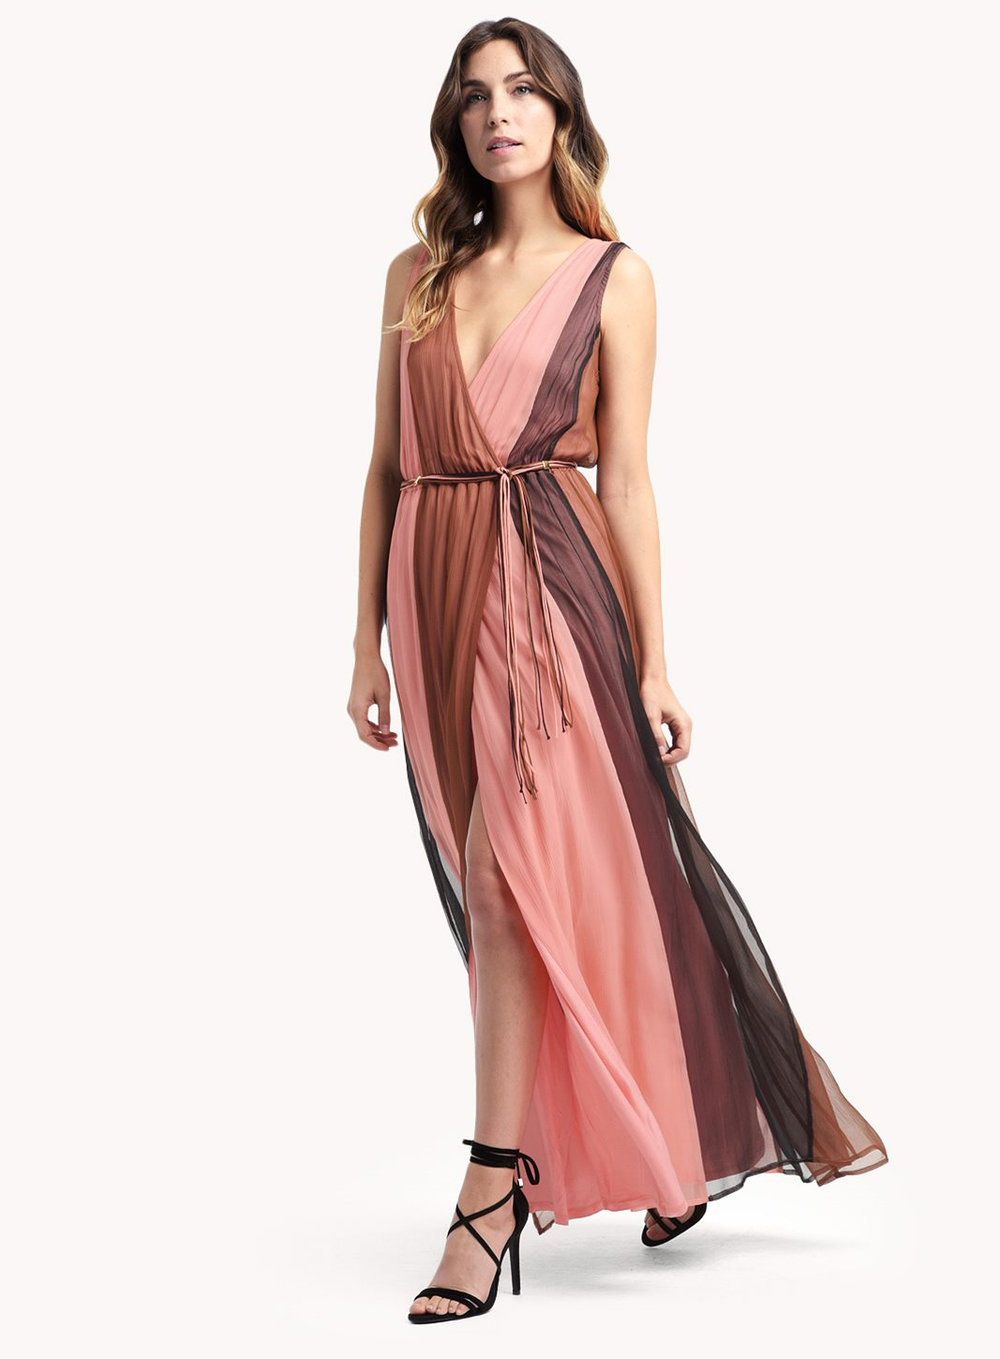 ella moss rose pink color blocking dress .jpeg